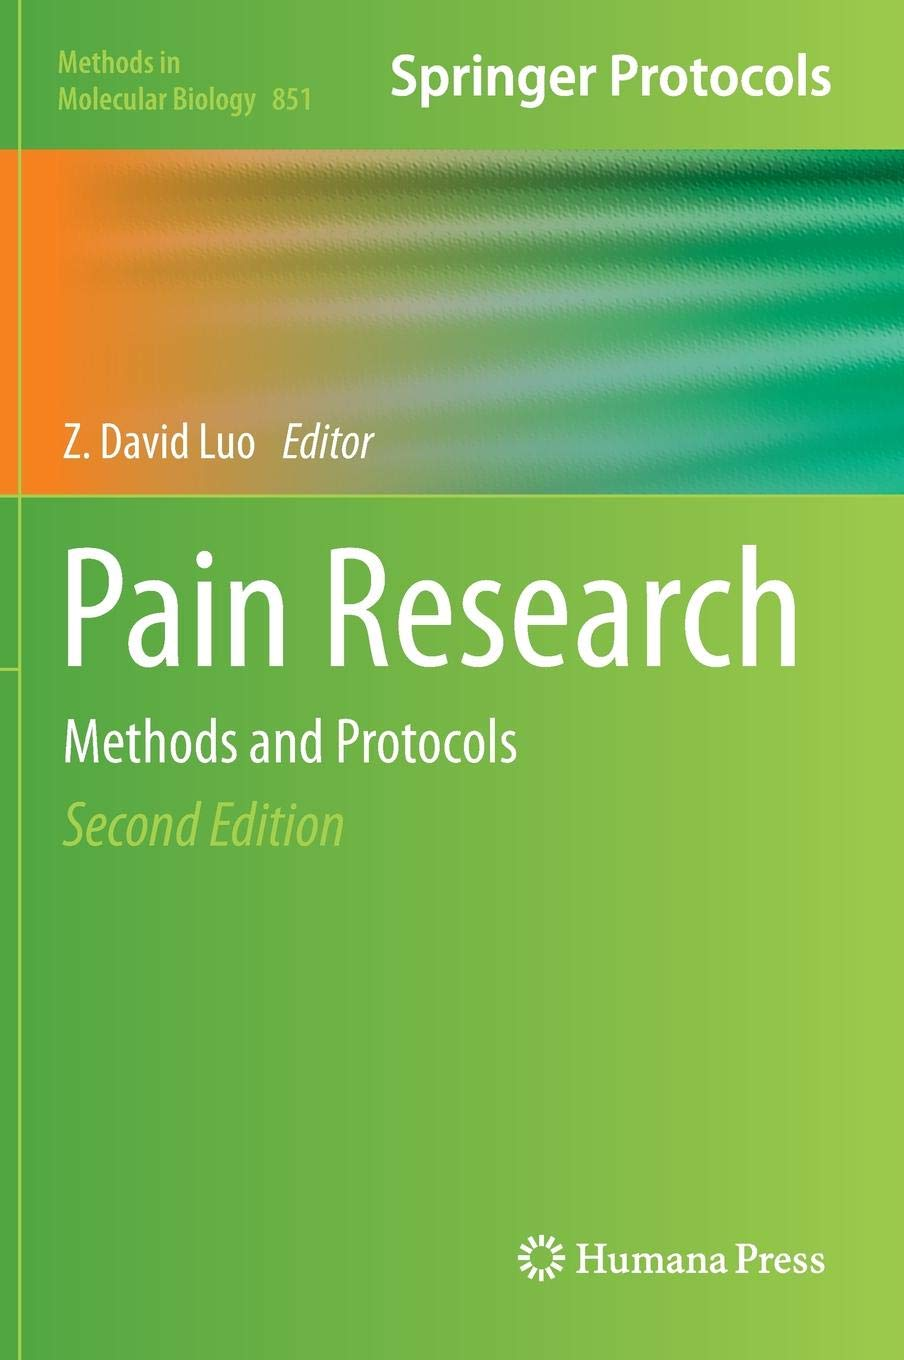 Pain Research  Methods And Protocols  Methods In Molecular Biology  851  Band 851